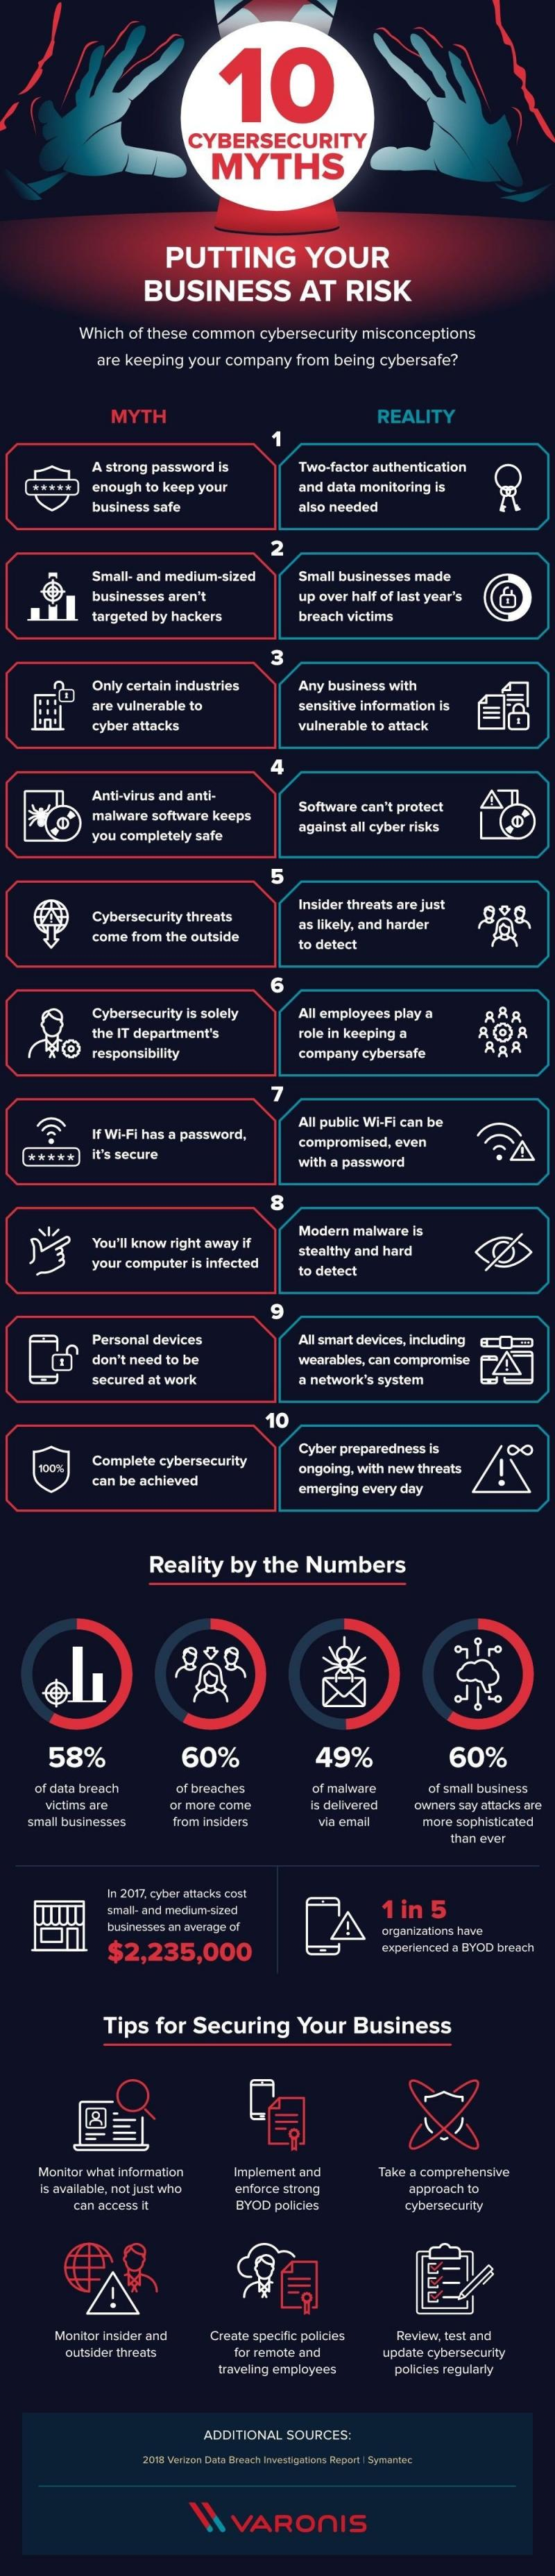 Ten #CyberSecurity myths #Infographic #Online #Business